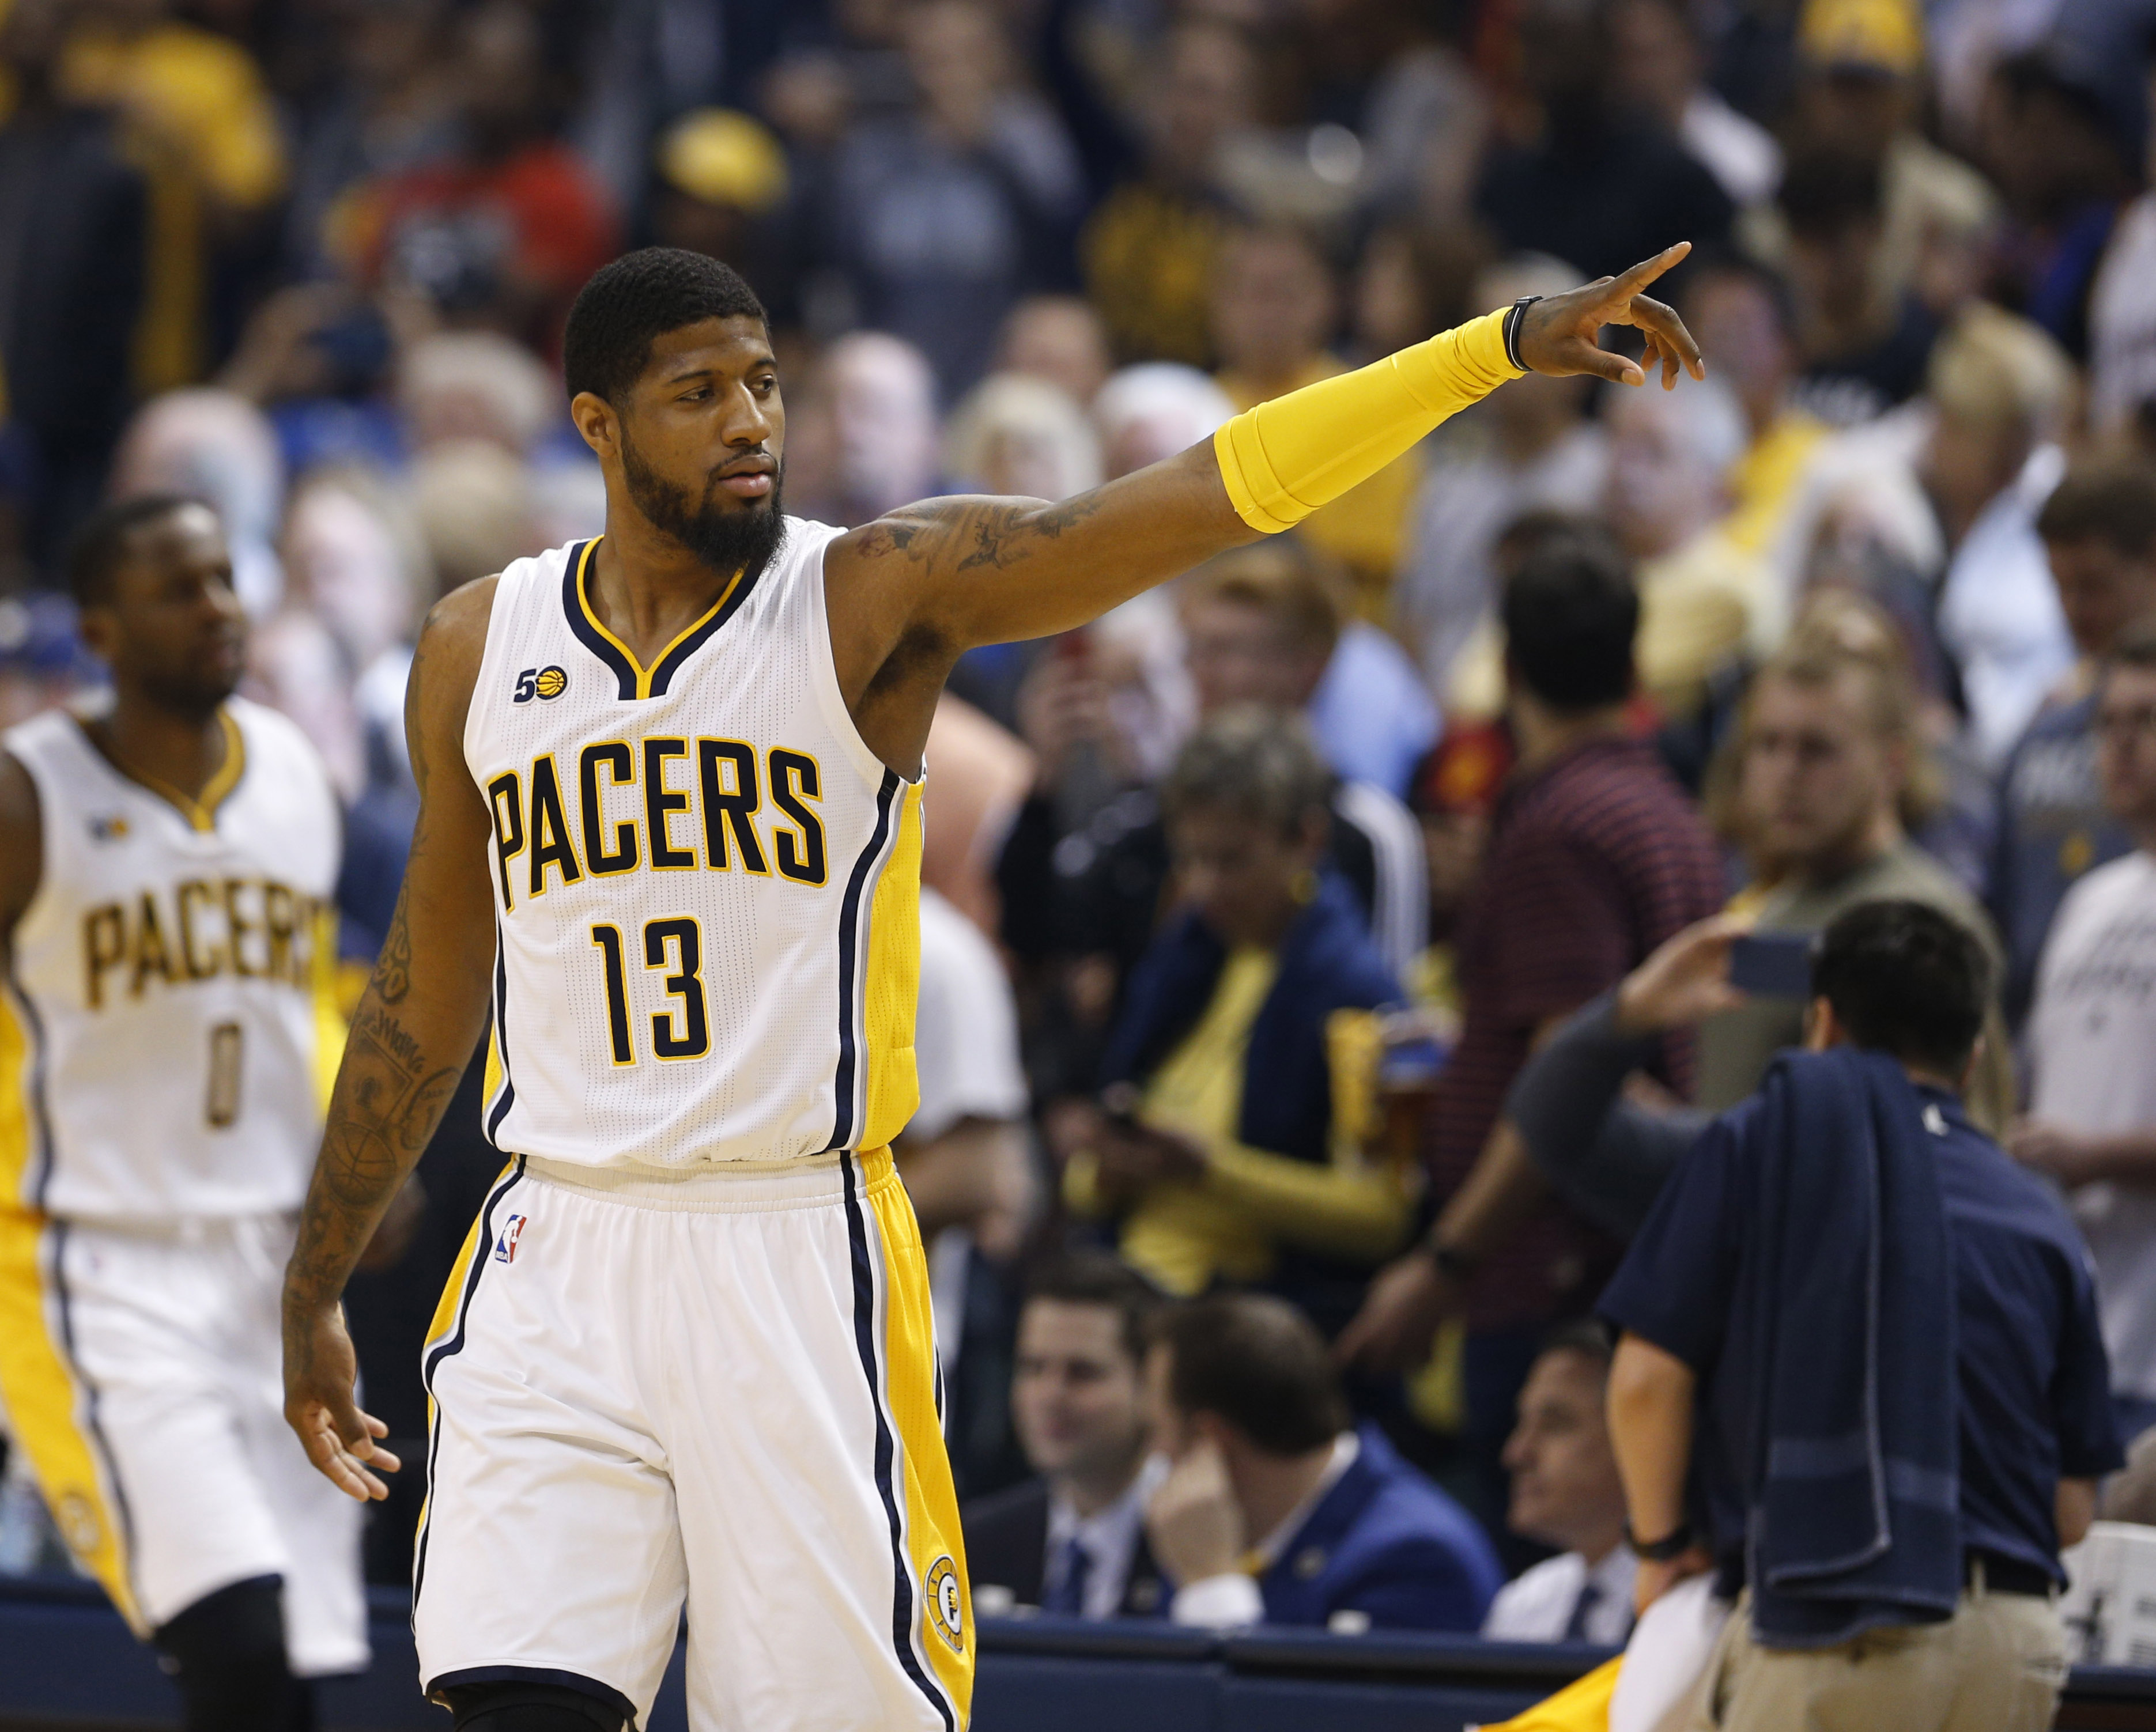 10027689-nba-playoffs-cleveland-cavaliers-at-indiana-pacers-5